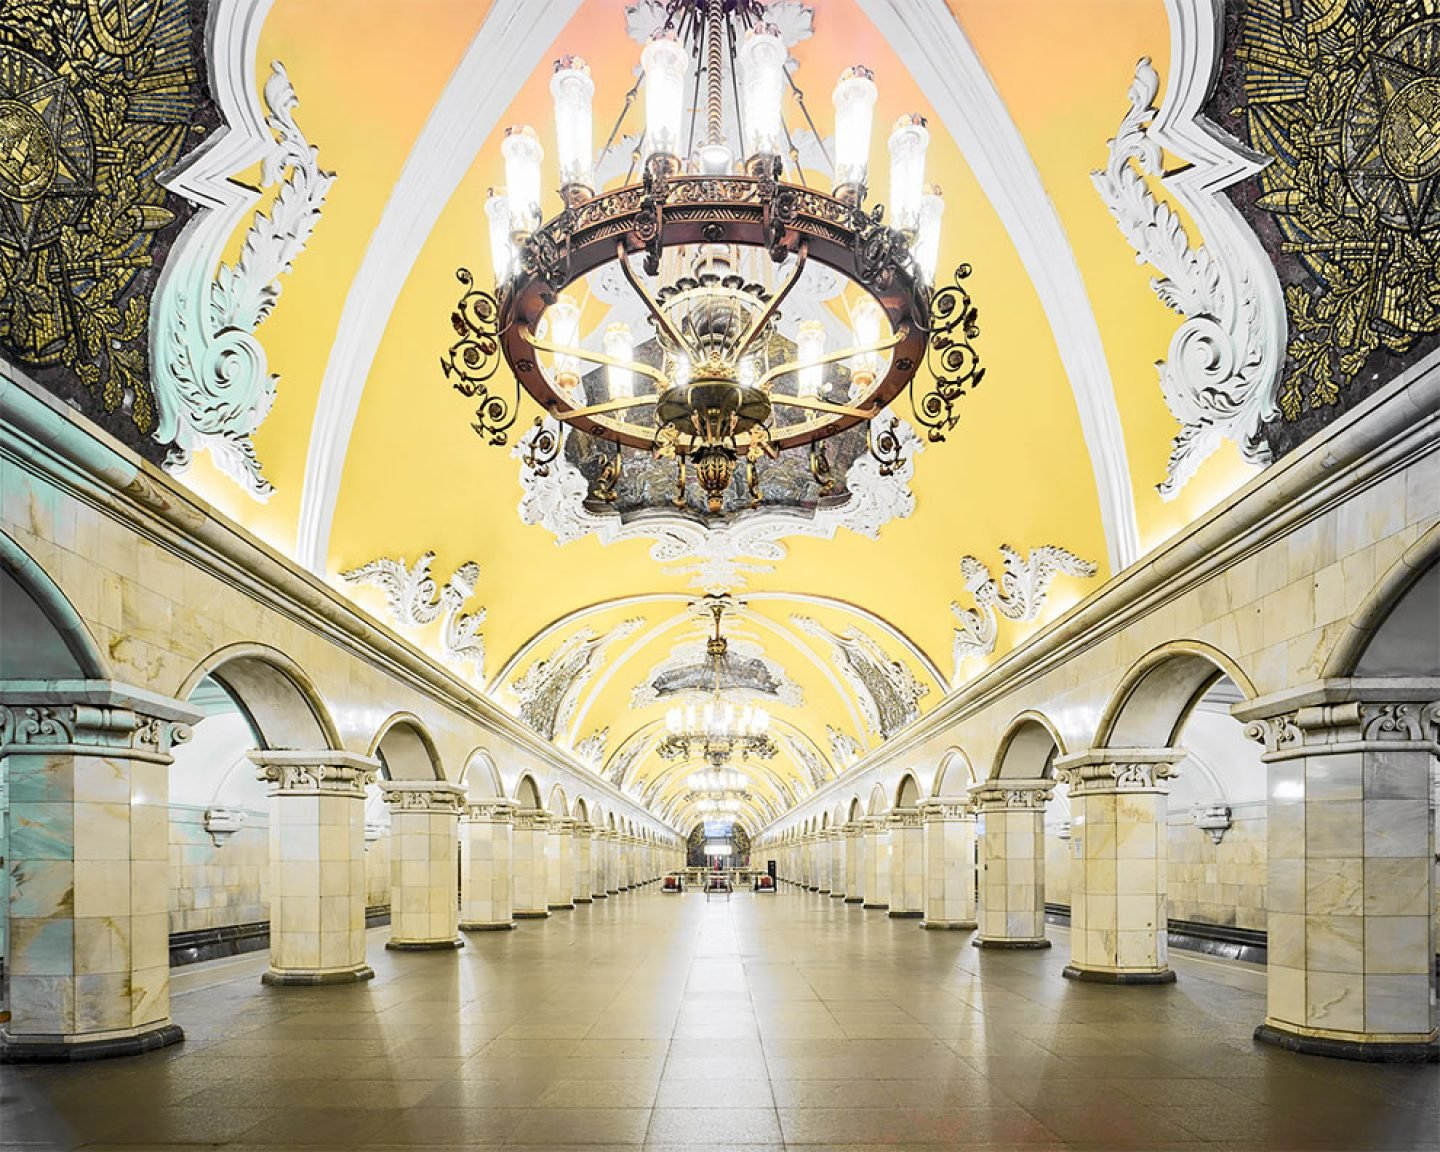 Photography_Moscow_Stunning_Underground_Network_David_Burdeny 09